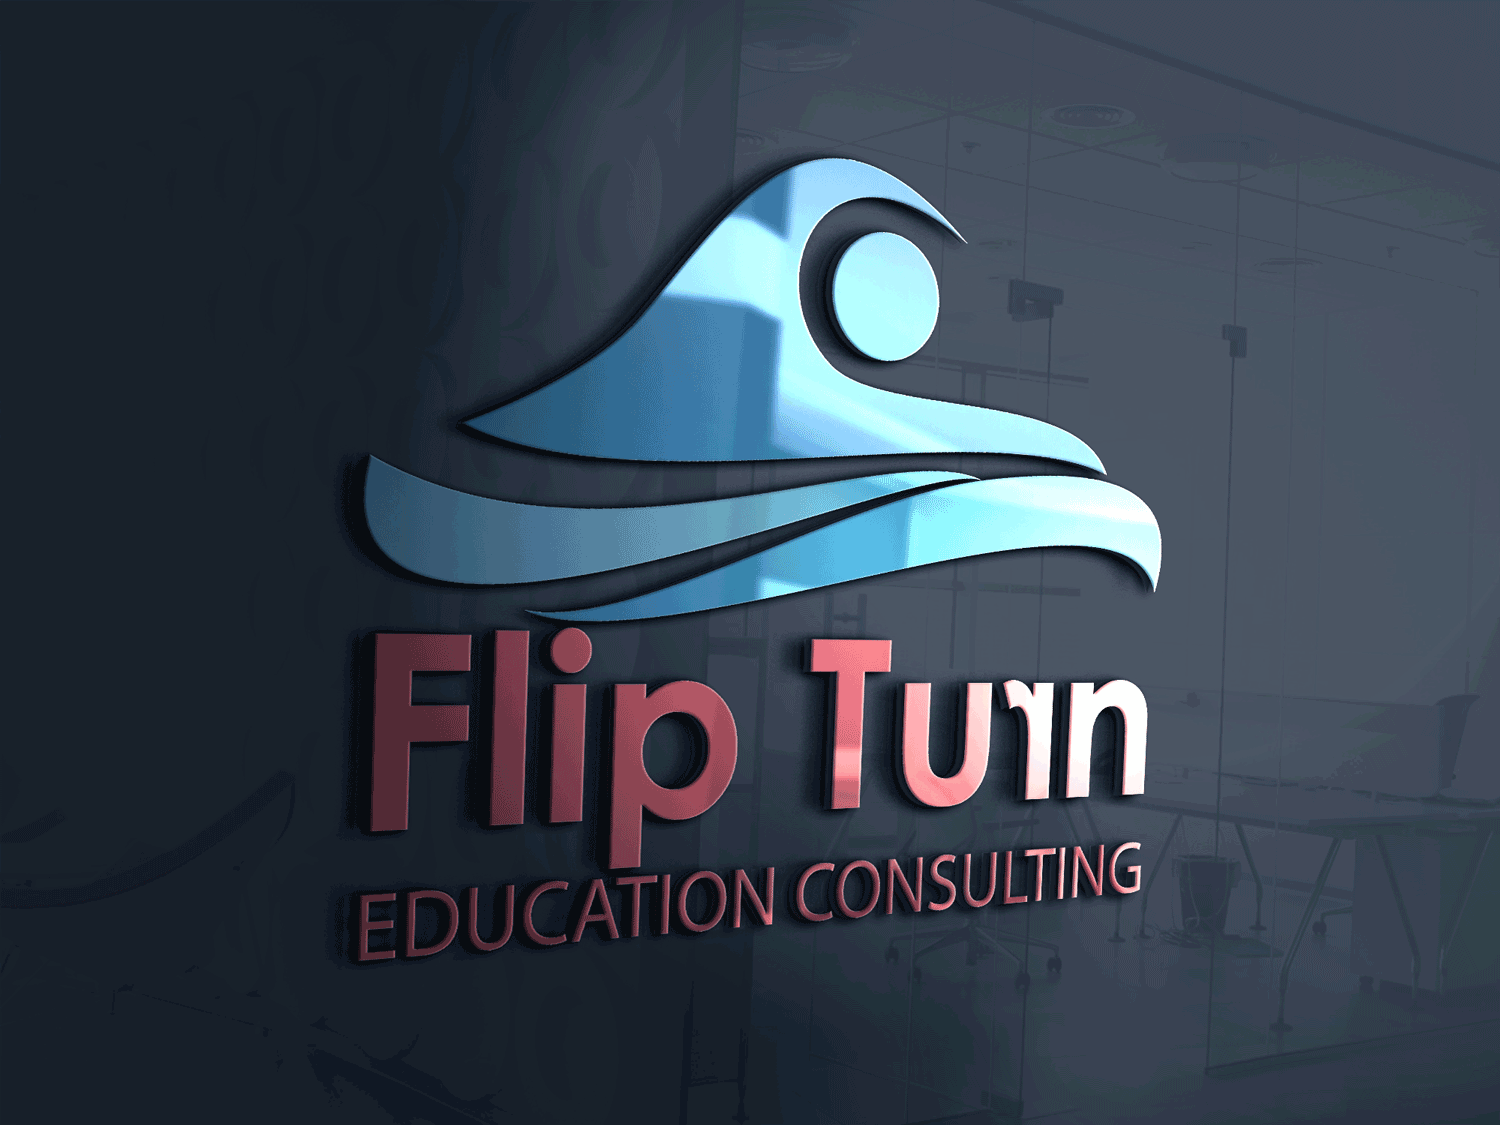 Bold modern education logo design for flipturn or flipturn